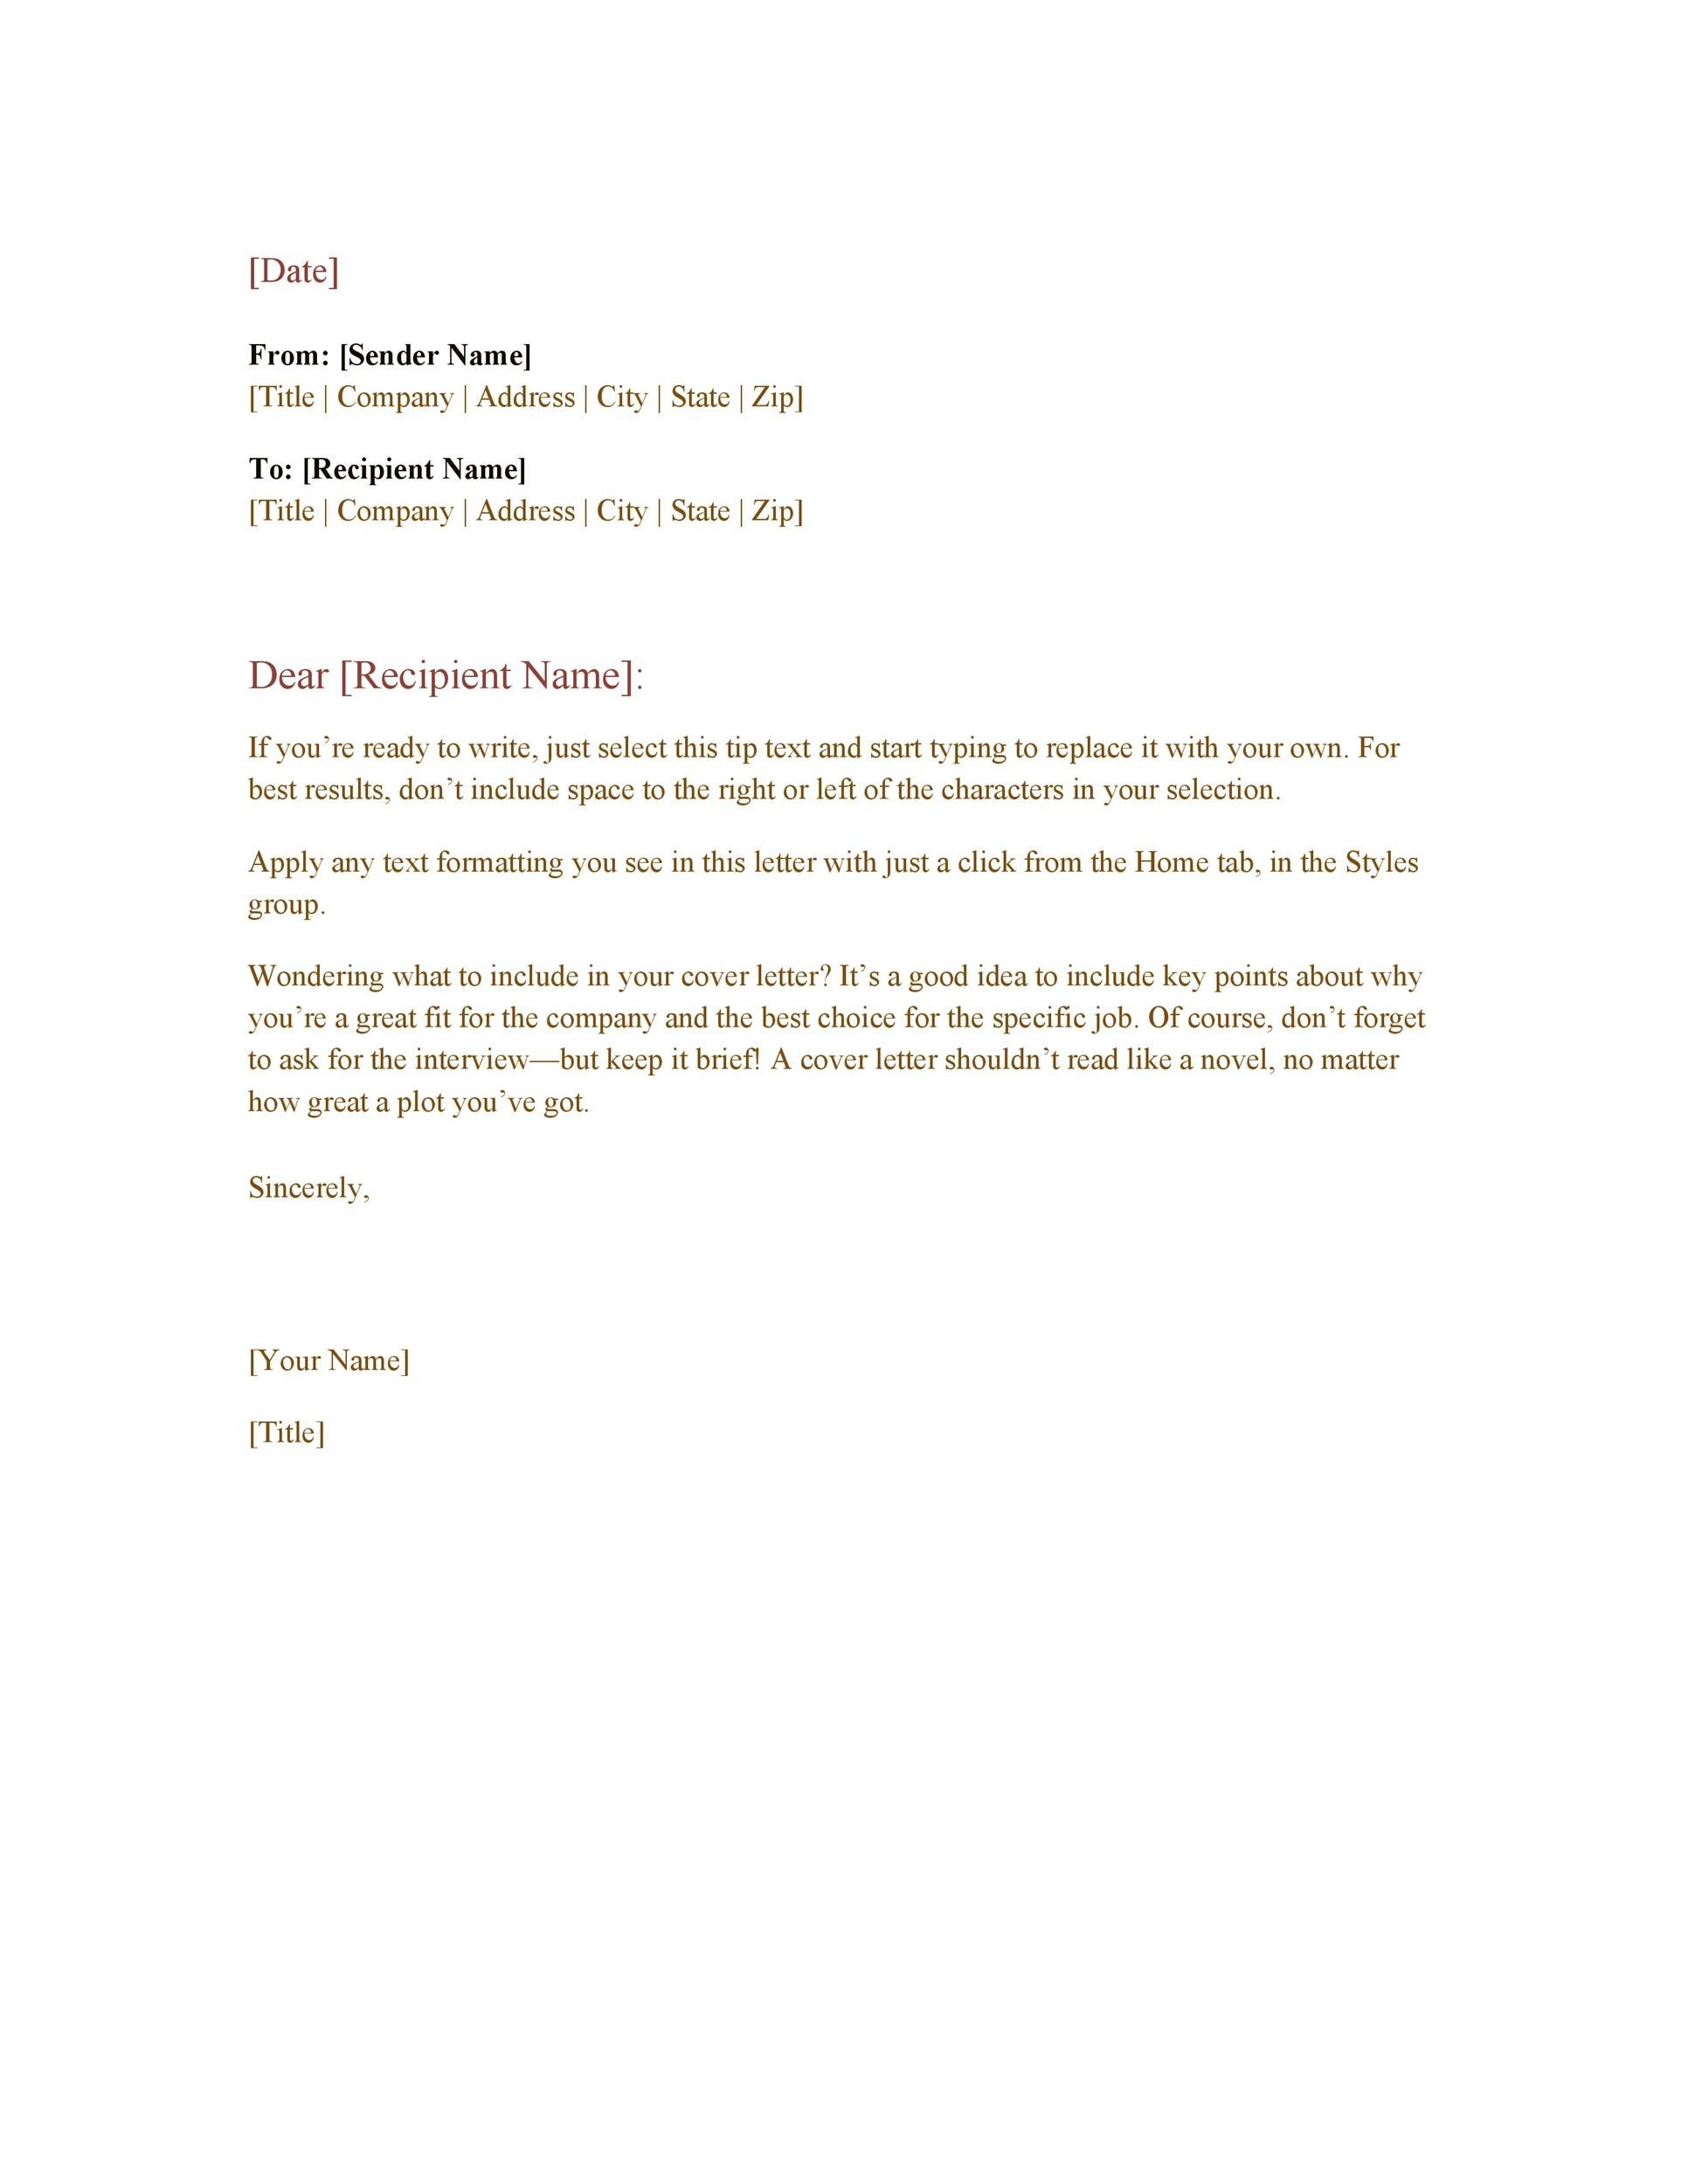 free formal business letter 06 - How To Start A Business Letter